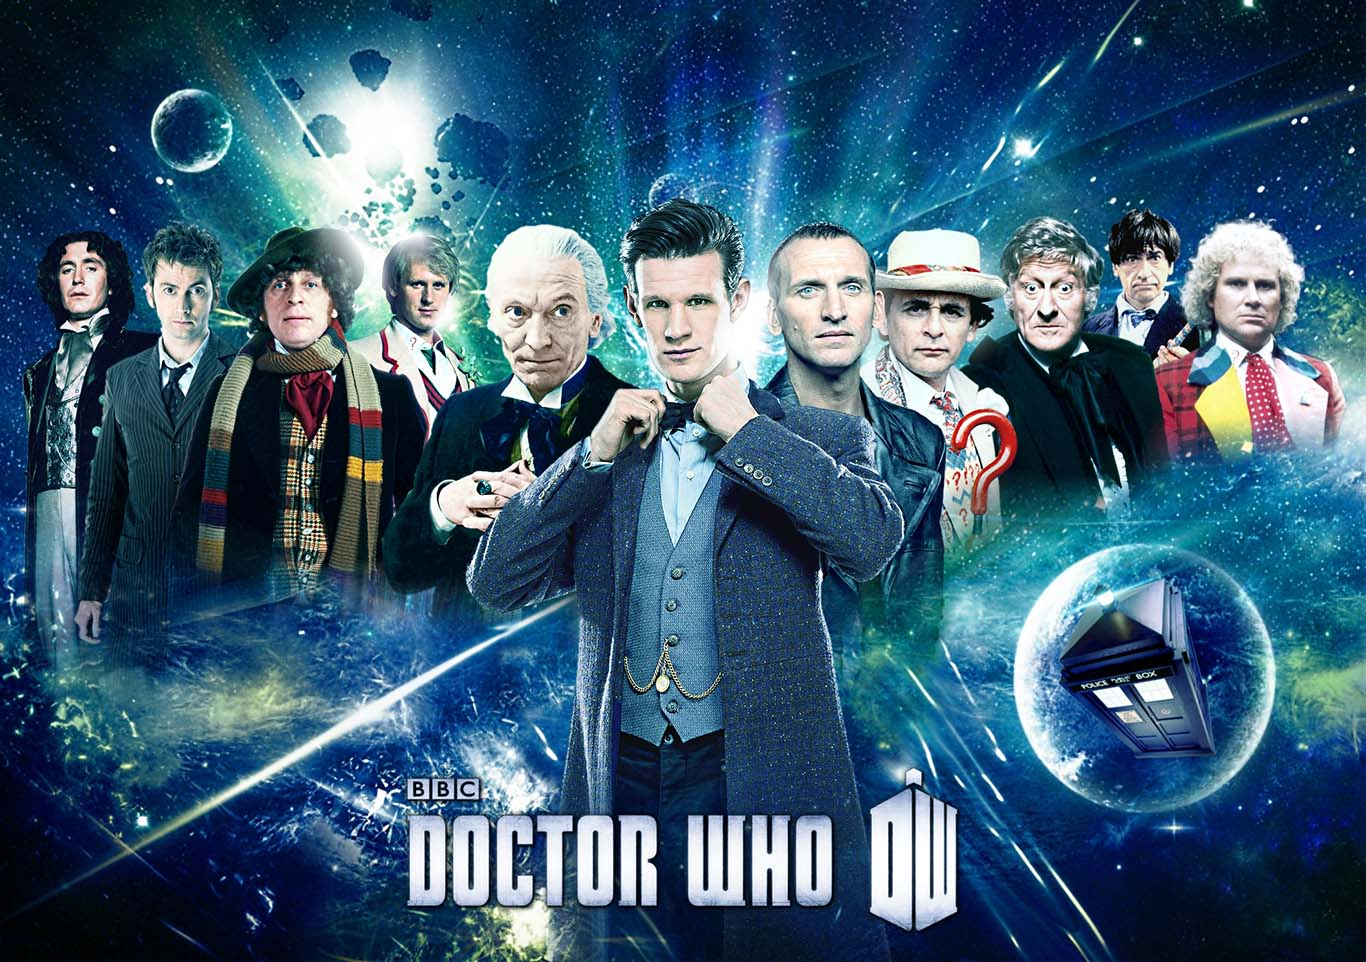 Doctor who wallpaper all doctors doctor who wallpaper - Dr who wallpaper ...